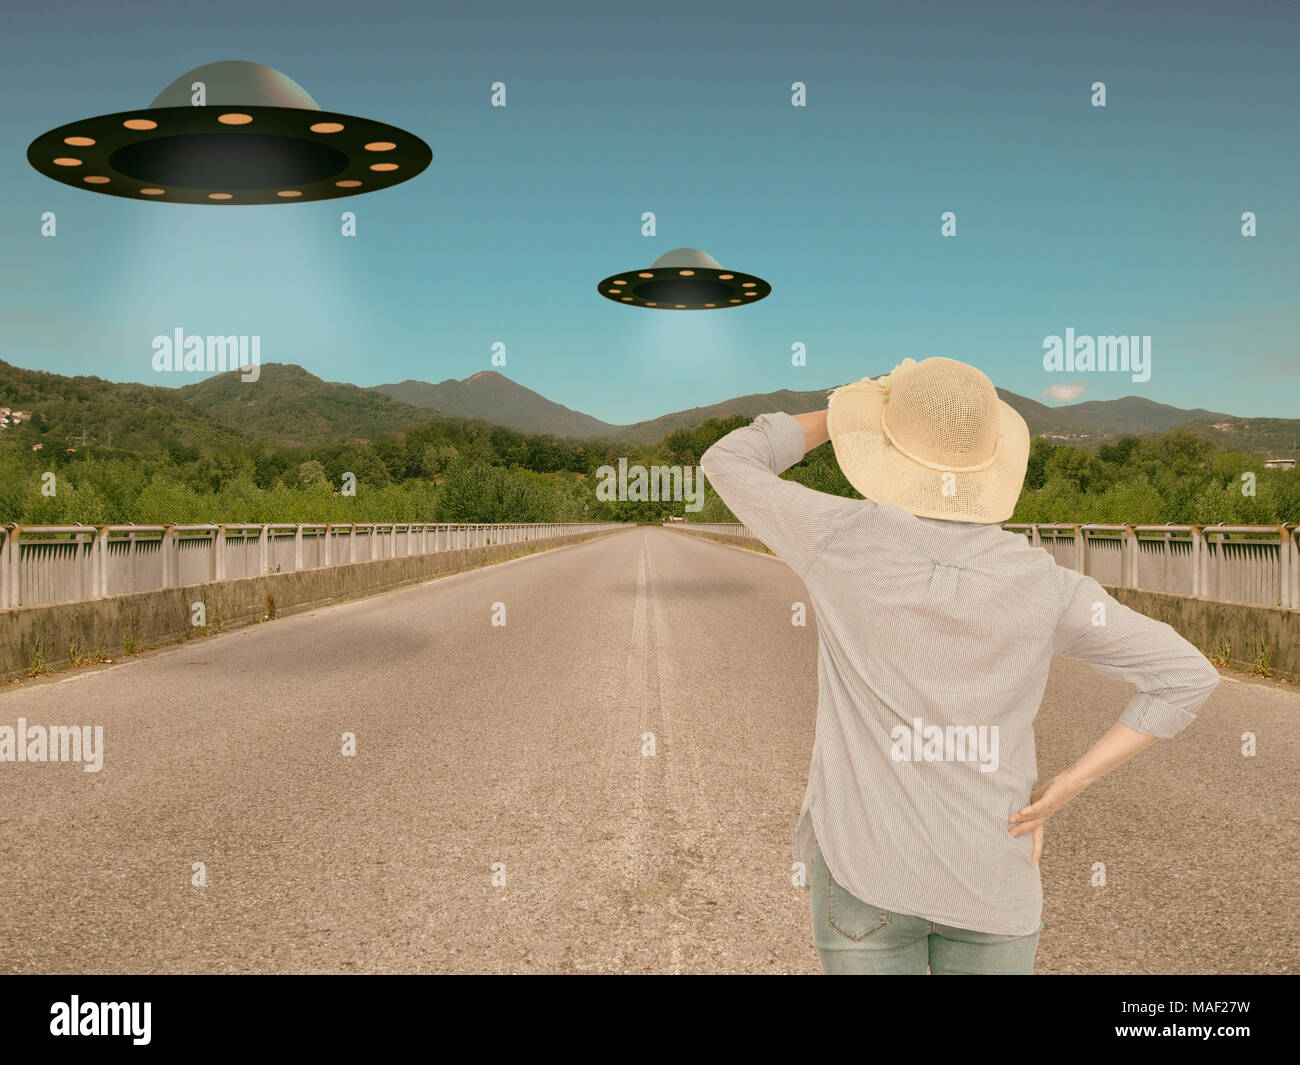 Woman watches UFOs. Vintage styling. - Stock Image